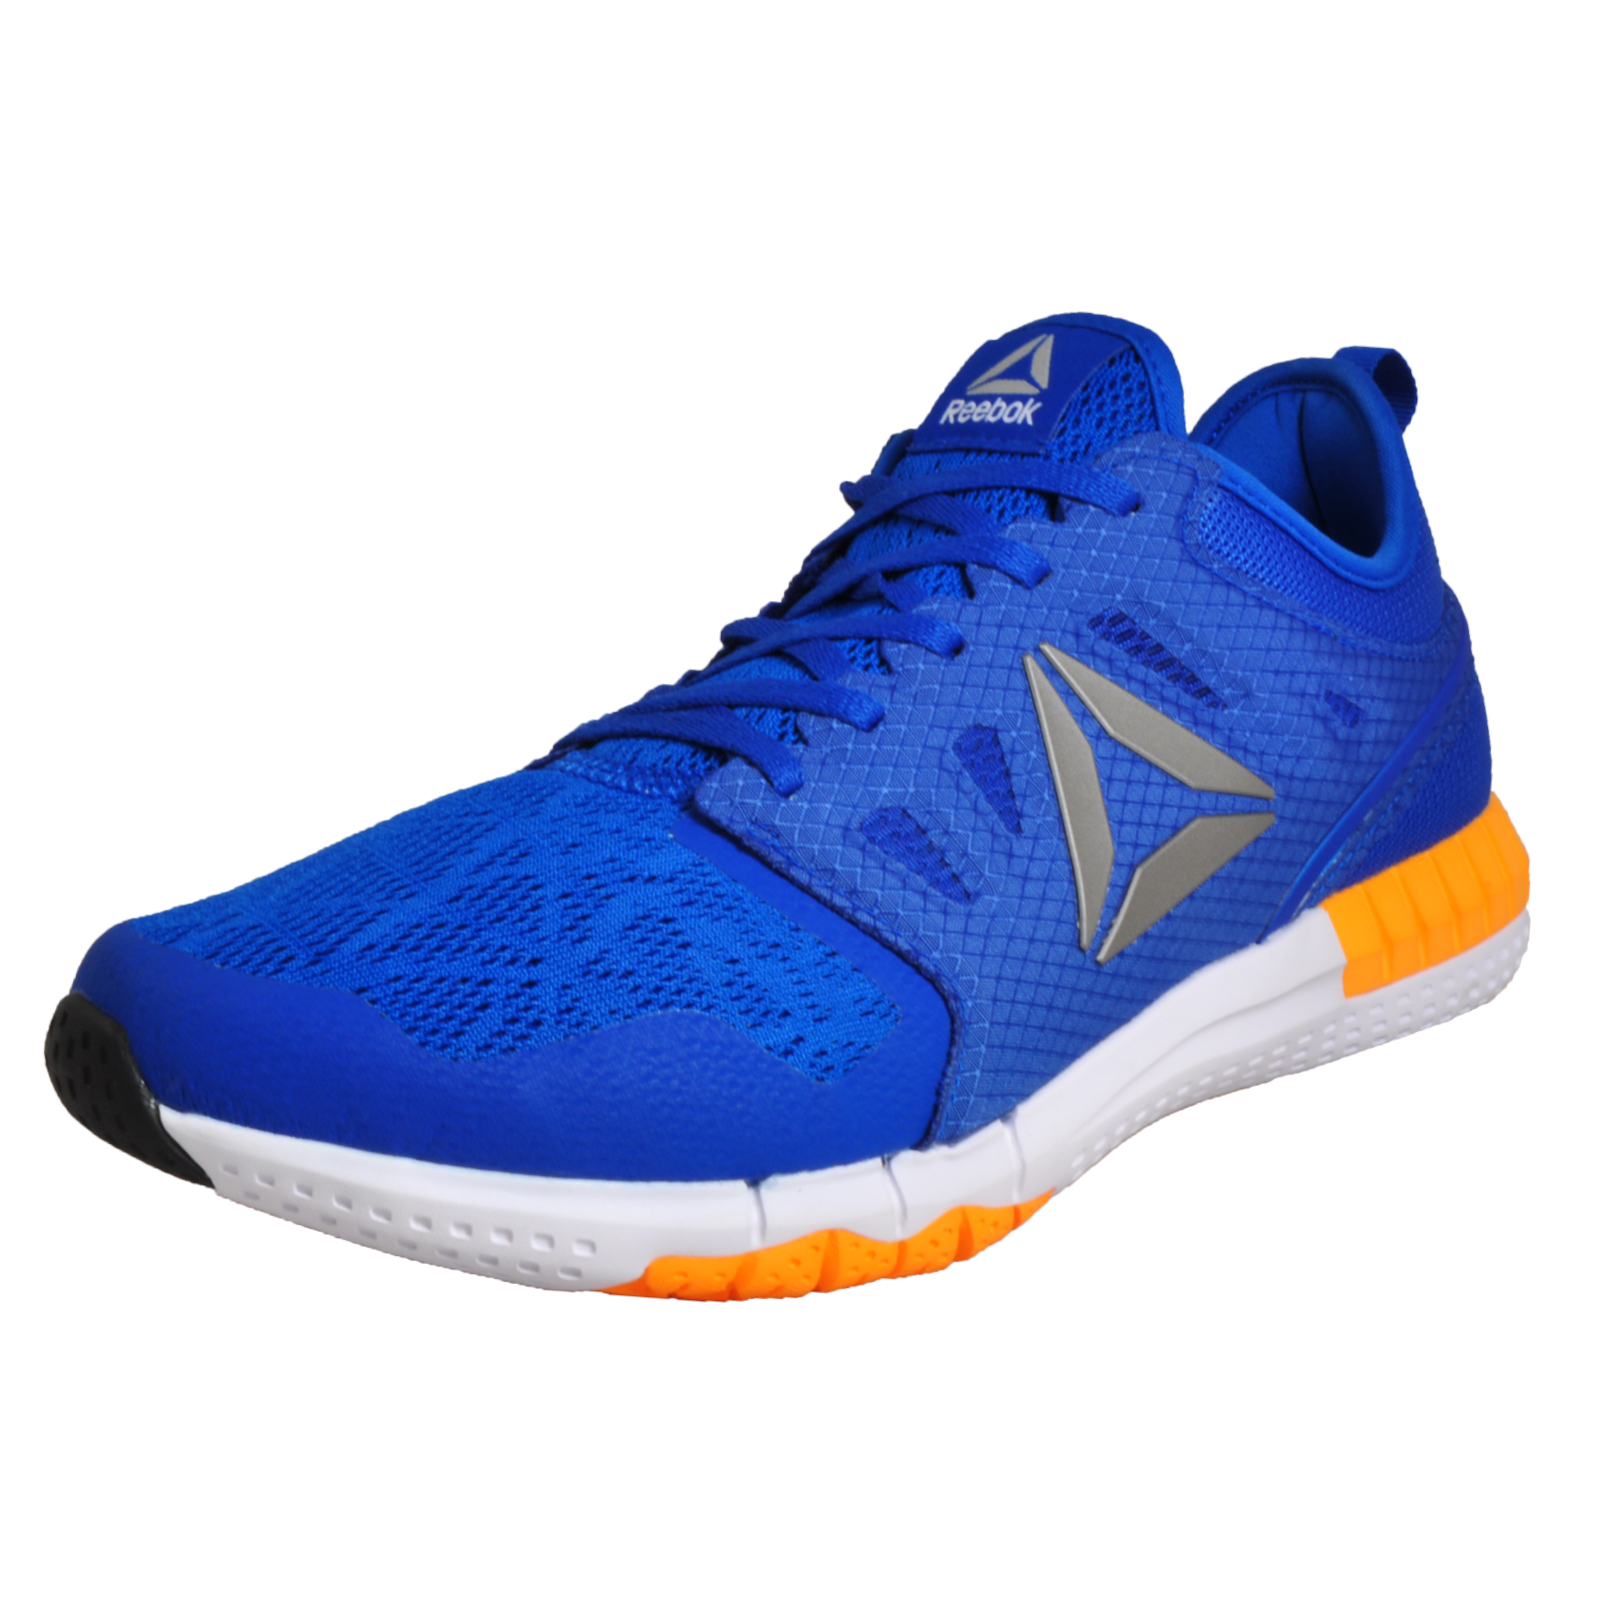 b019b08ed25f04 Details about Reebok Zprint 3D Mens Running Shoes Gym Fitness Trainers Blue